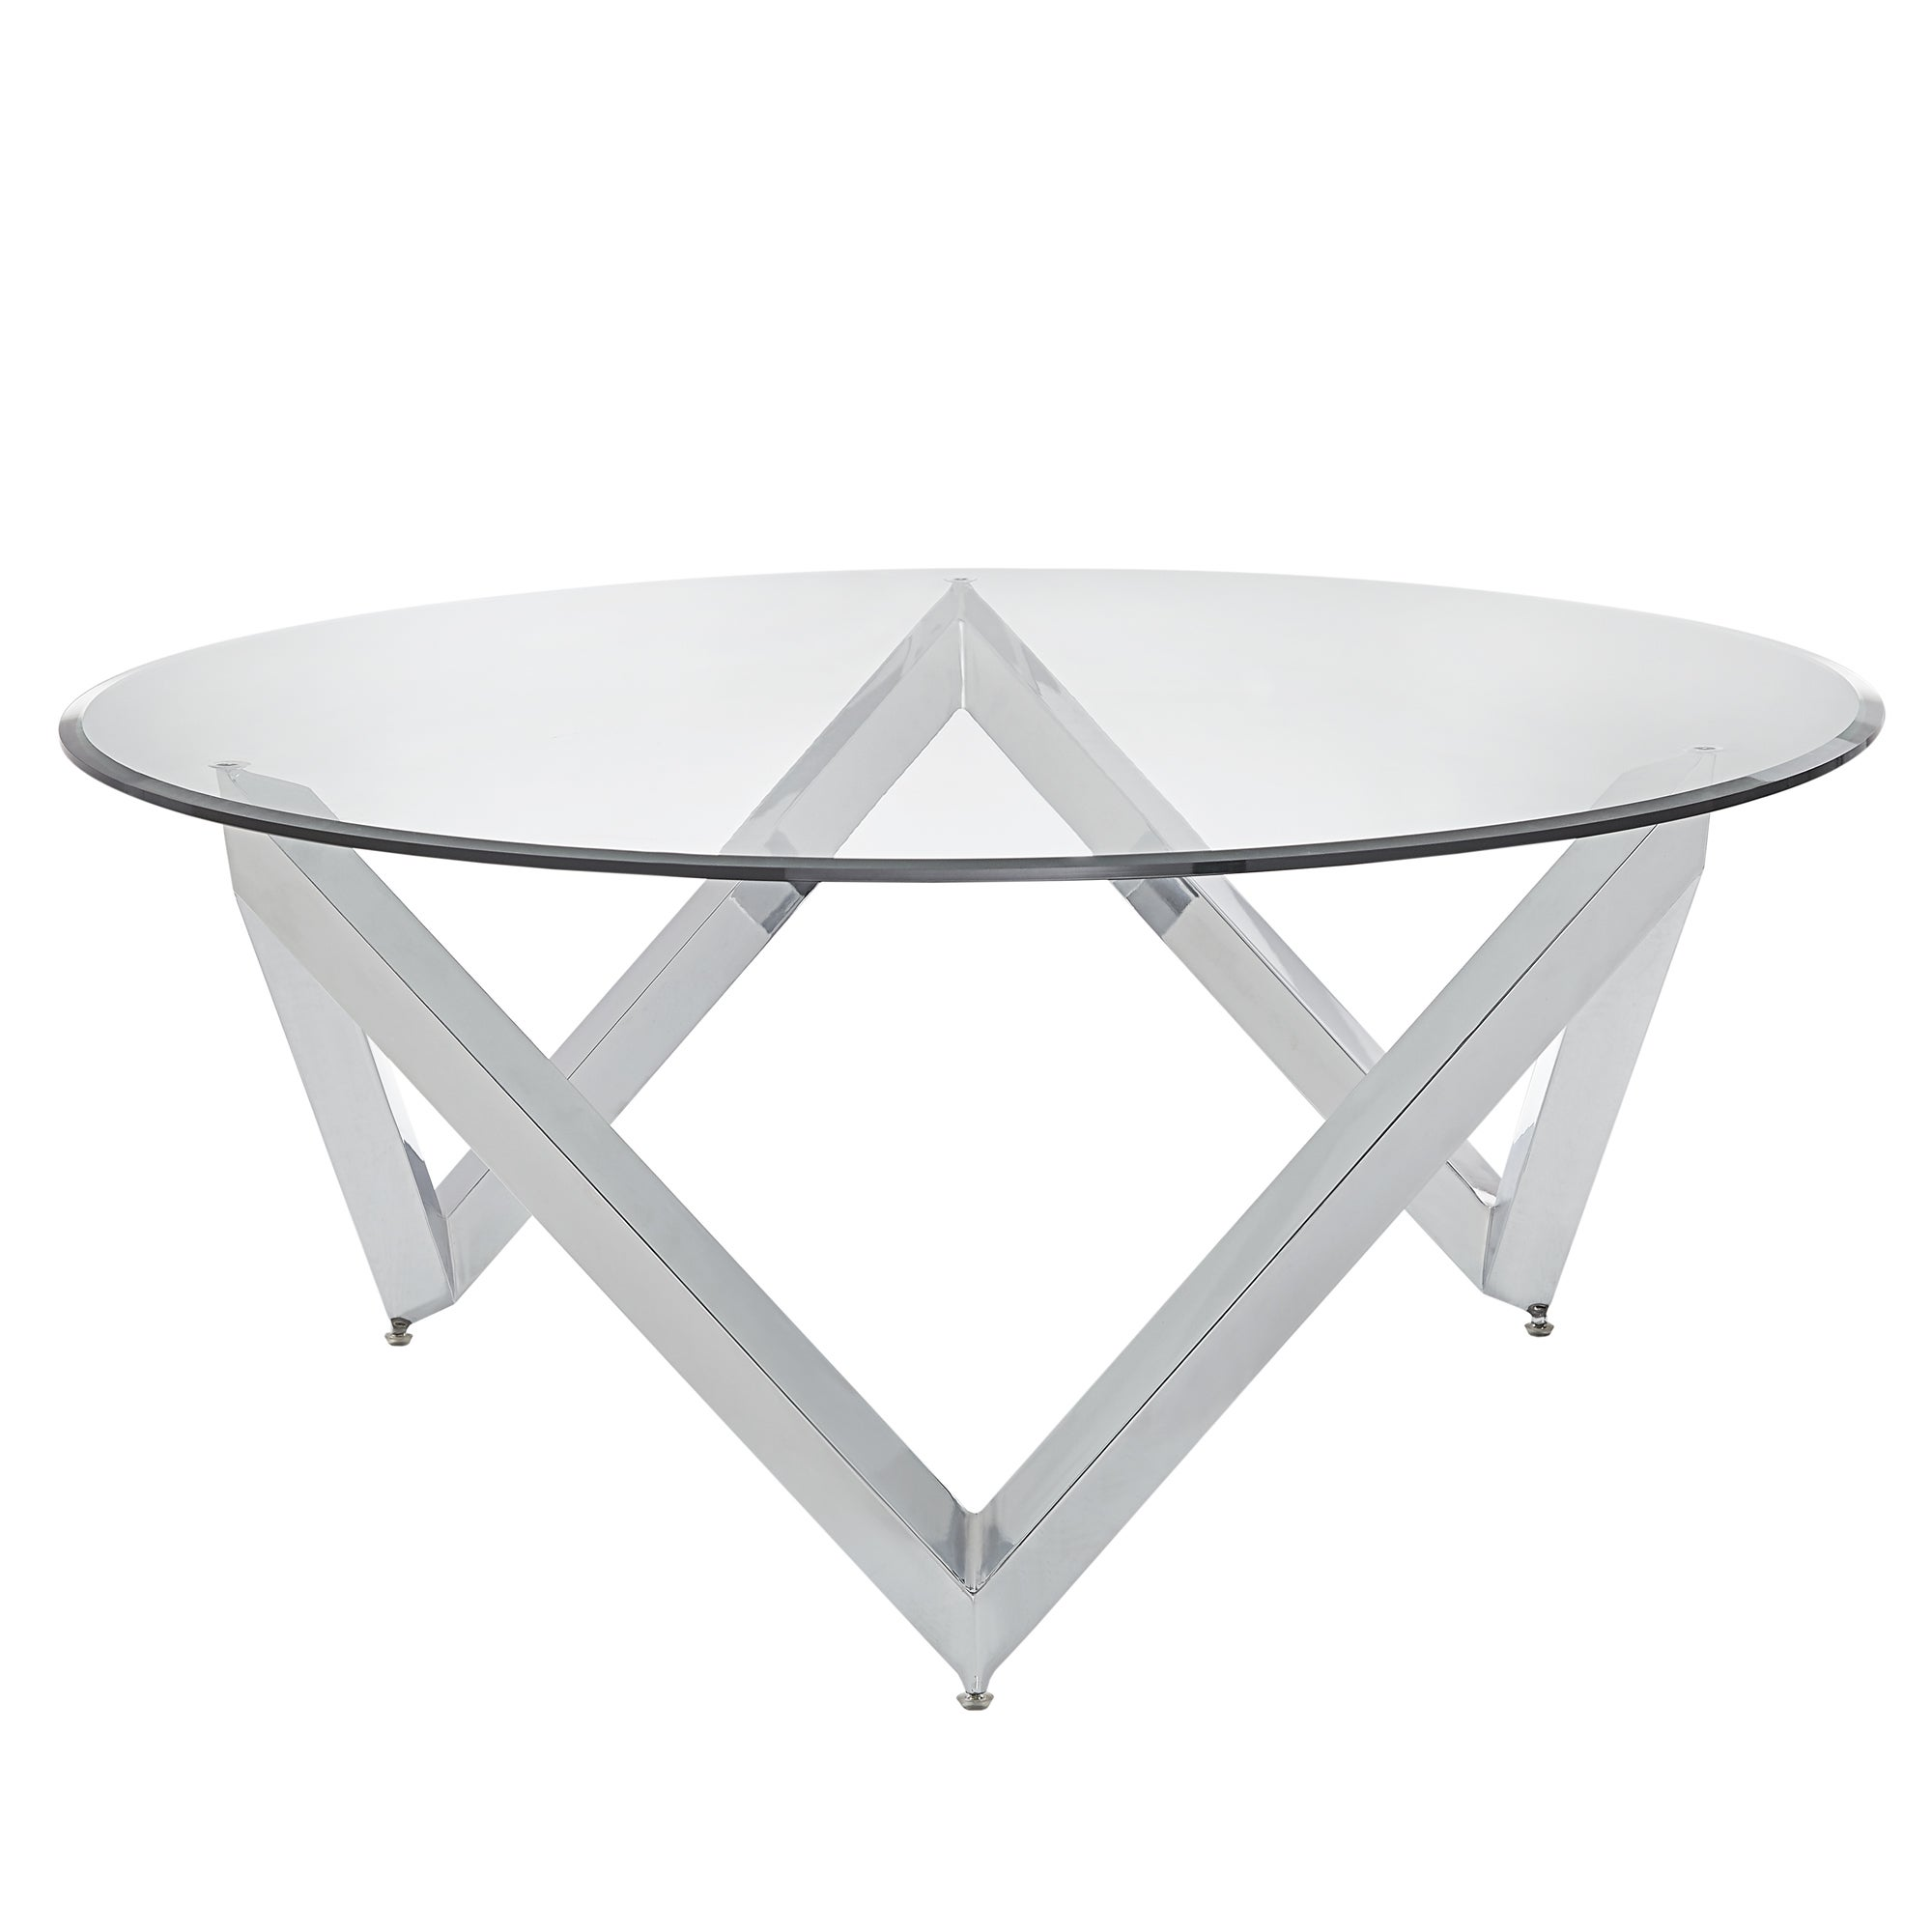 Marlin Angular Chrome And Gl Accent Tables By Inspire Q Bold Free Shipping Today 19577739